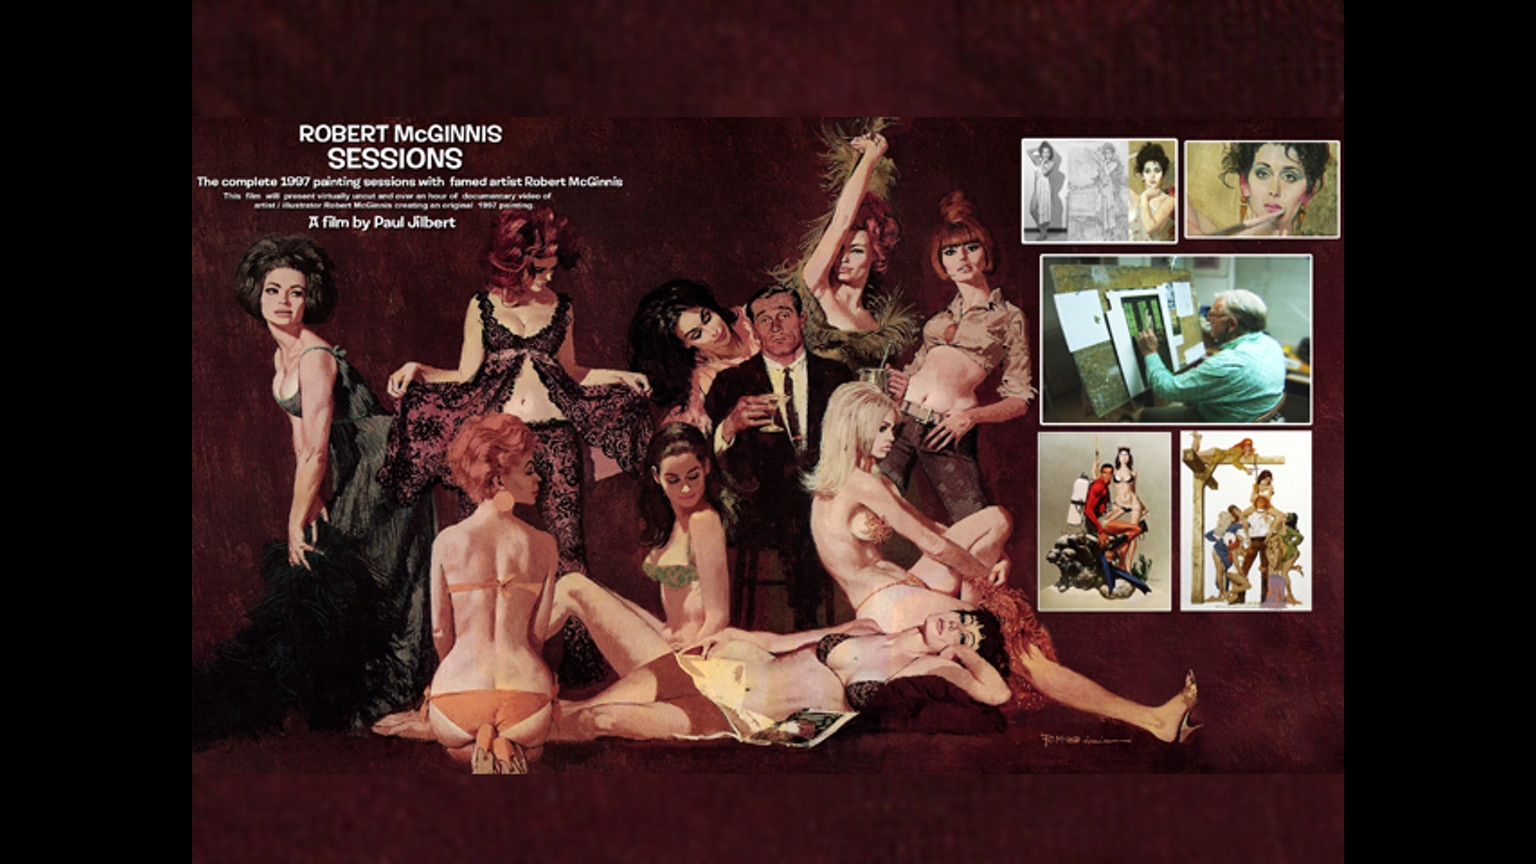 Art Grid Calendar : Robert mcginnis sessions canceled by paul jilbert